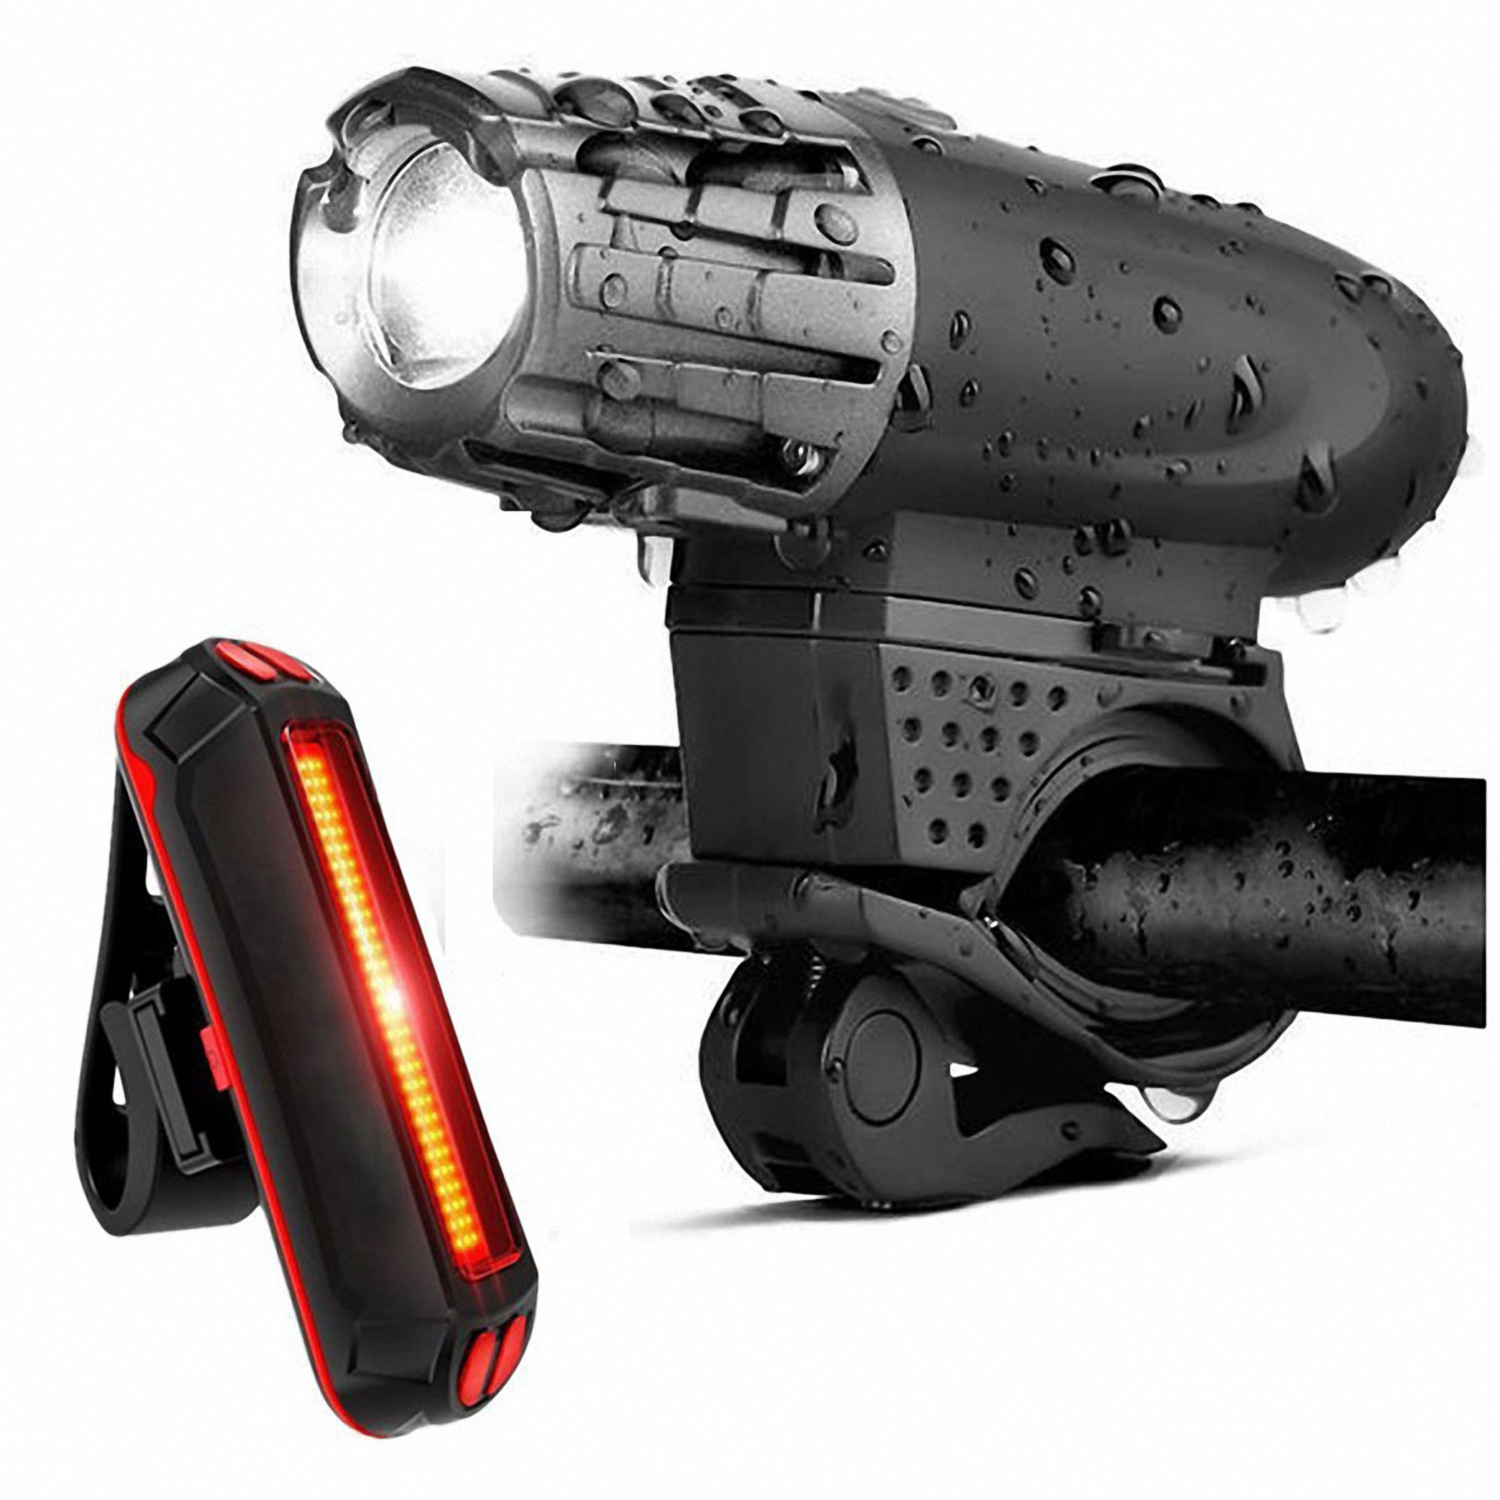 Good Deal-Bike Lights Bicycle Lights Front And Back USB Rechargeable Bike Light Set Super Bright Front And Rear Flashlight LED